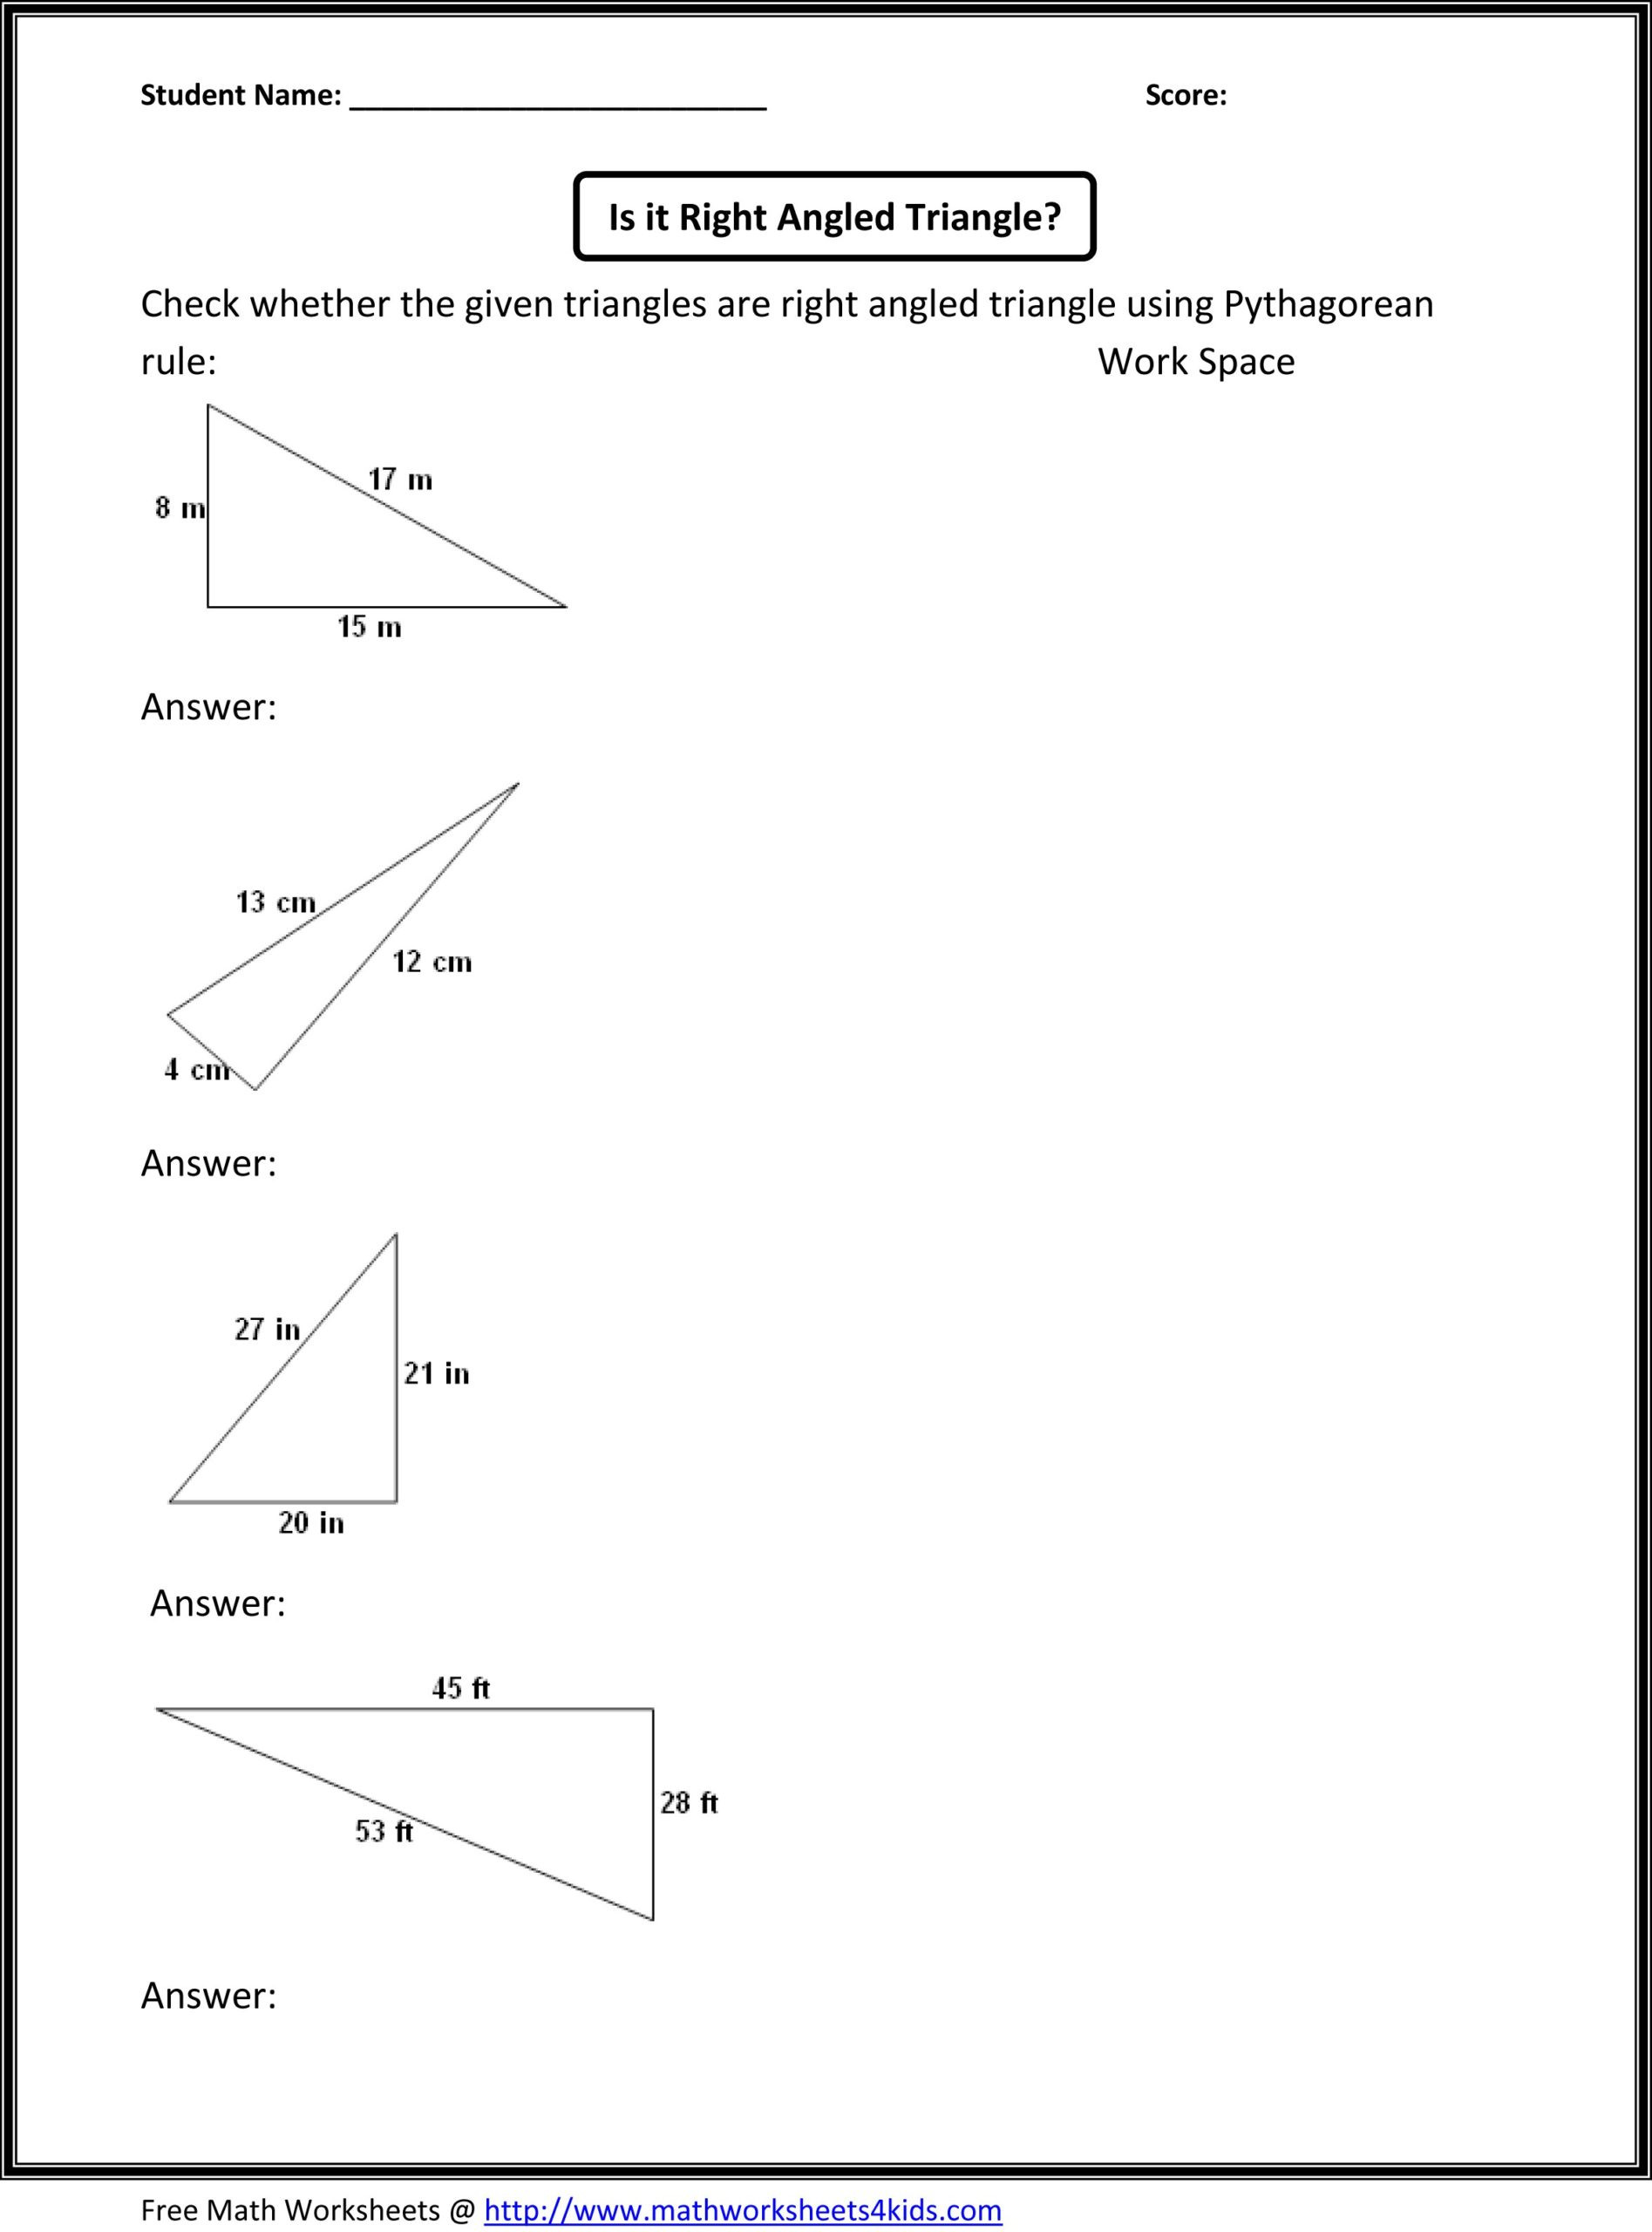 Geometry Worksheets 10th Grade Math Worksheet 8th Grade Math Worksheets Geometry or